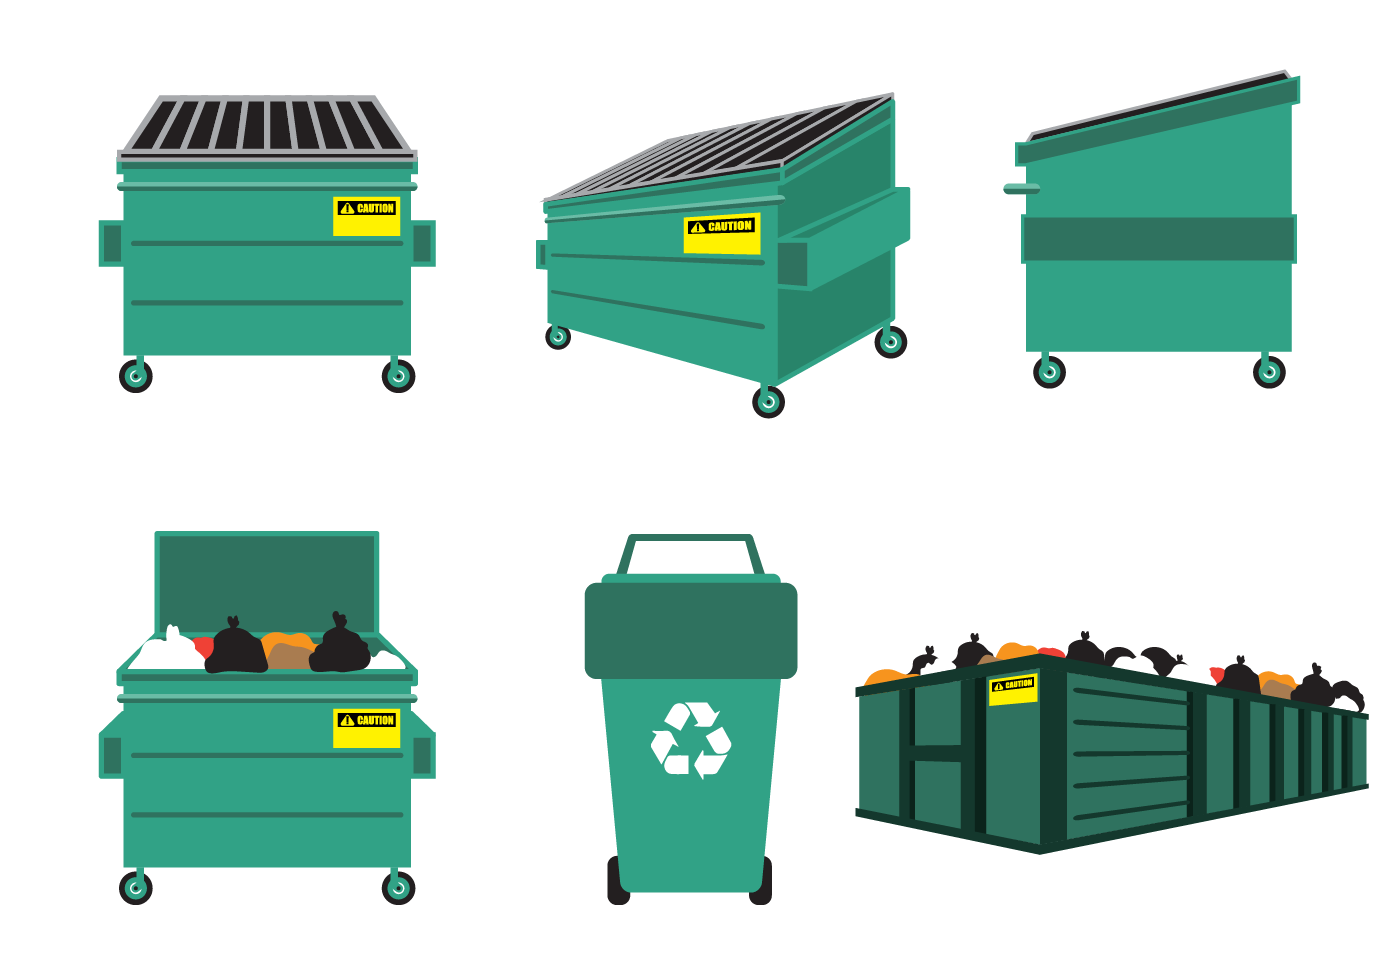 Free Dumpster Cliparts, Download Free Clip Art, Free Clip.